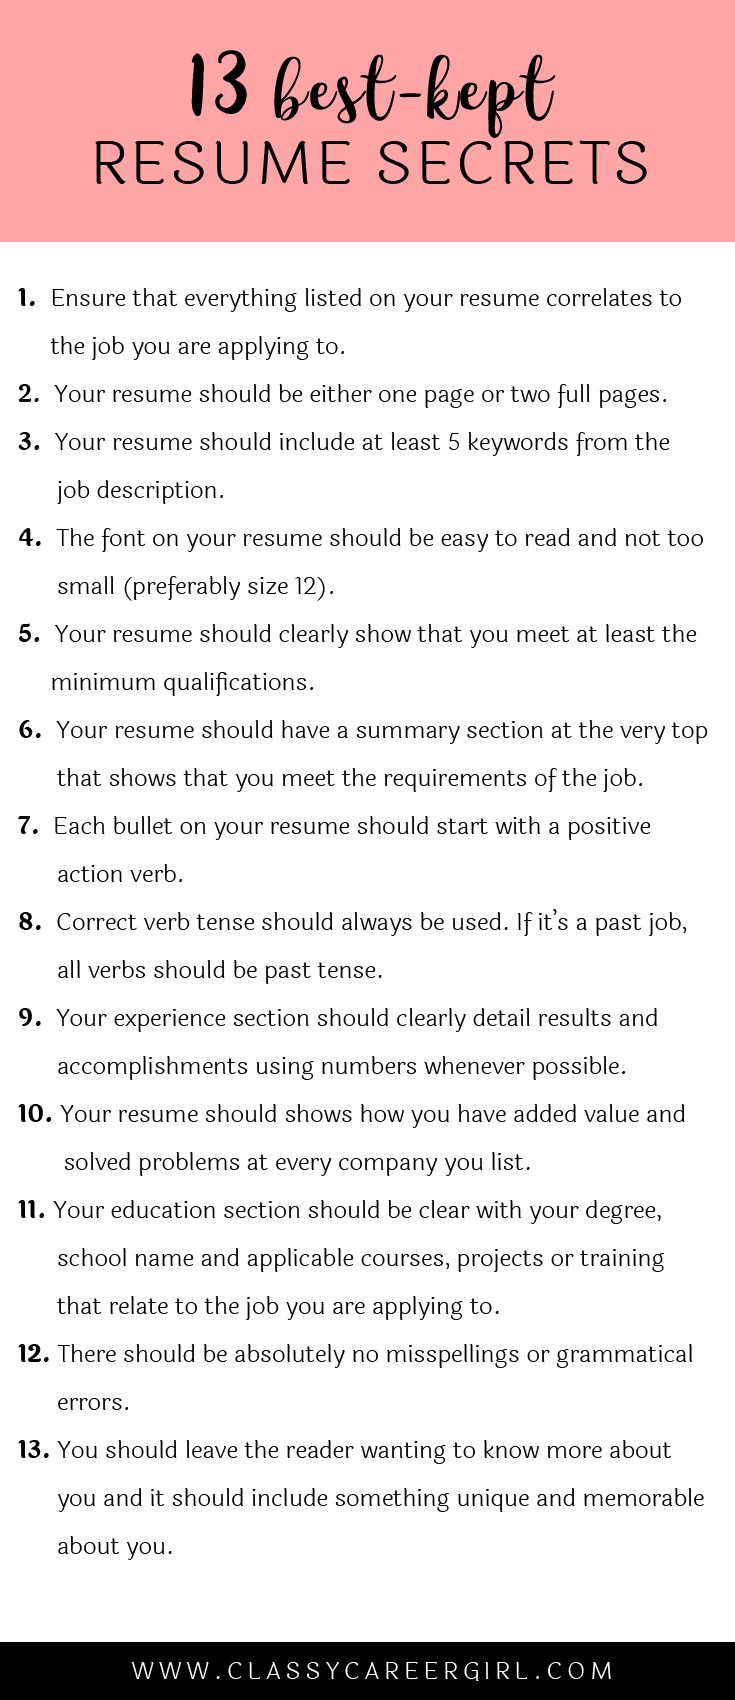 some hiring managers will toss your resume out if you dont know these 13